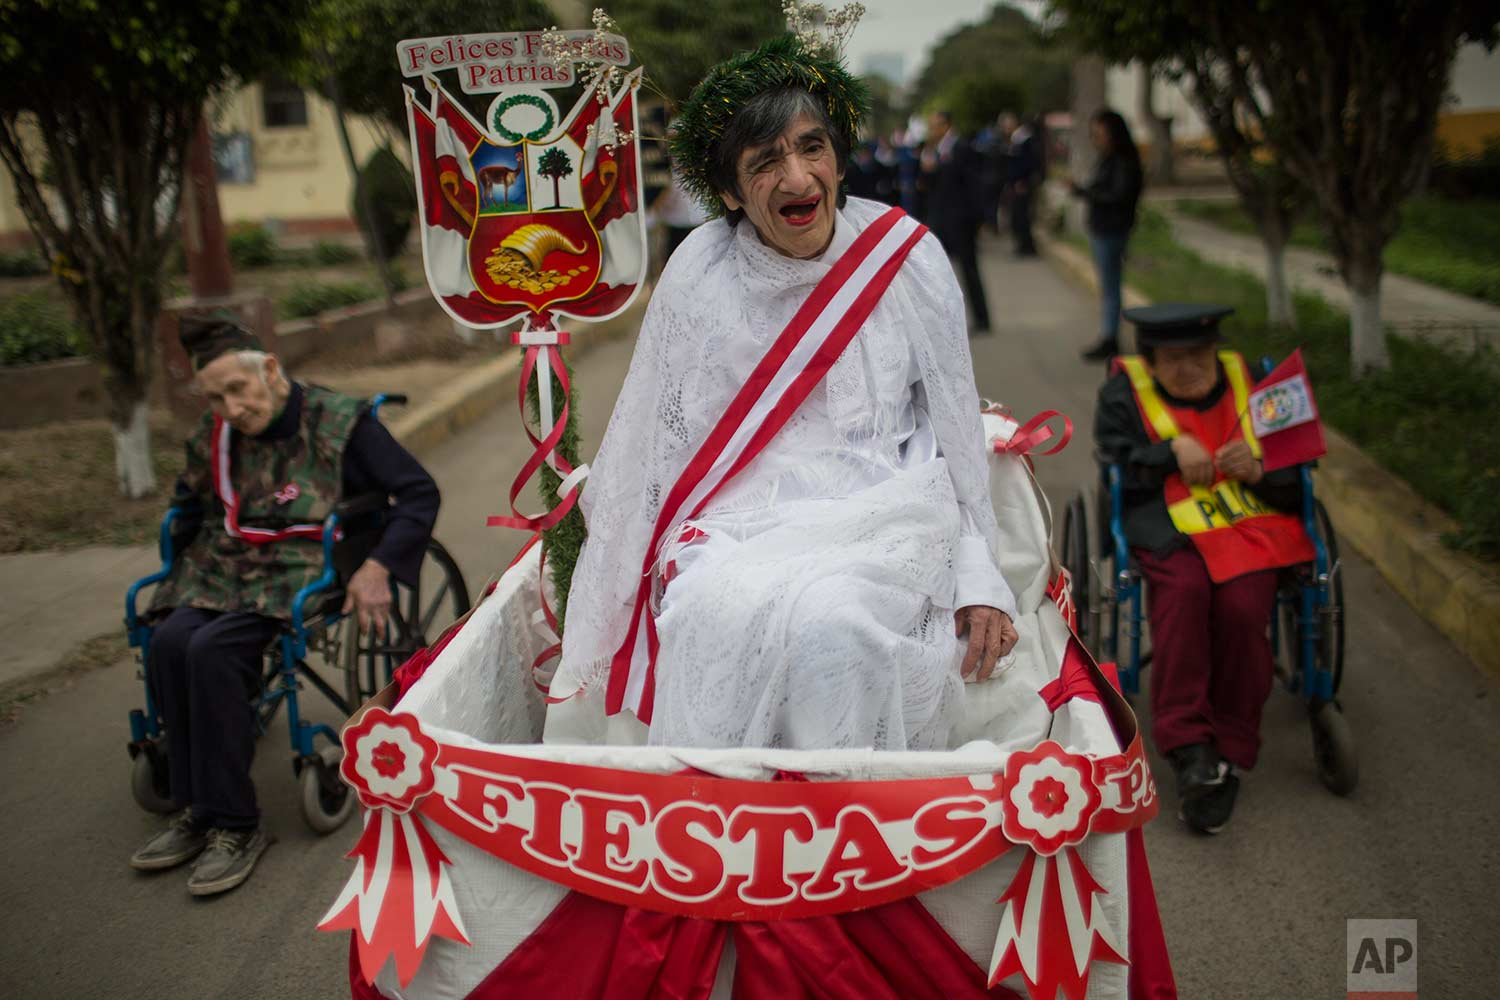 Larco Herrera Psychiatric Hospital patients wait to take part in the hospital's Independence Day parade, in Lima, Peru, Friday, July 21, 2017. (AP Photo/Rodrigo Abd)